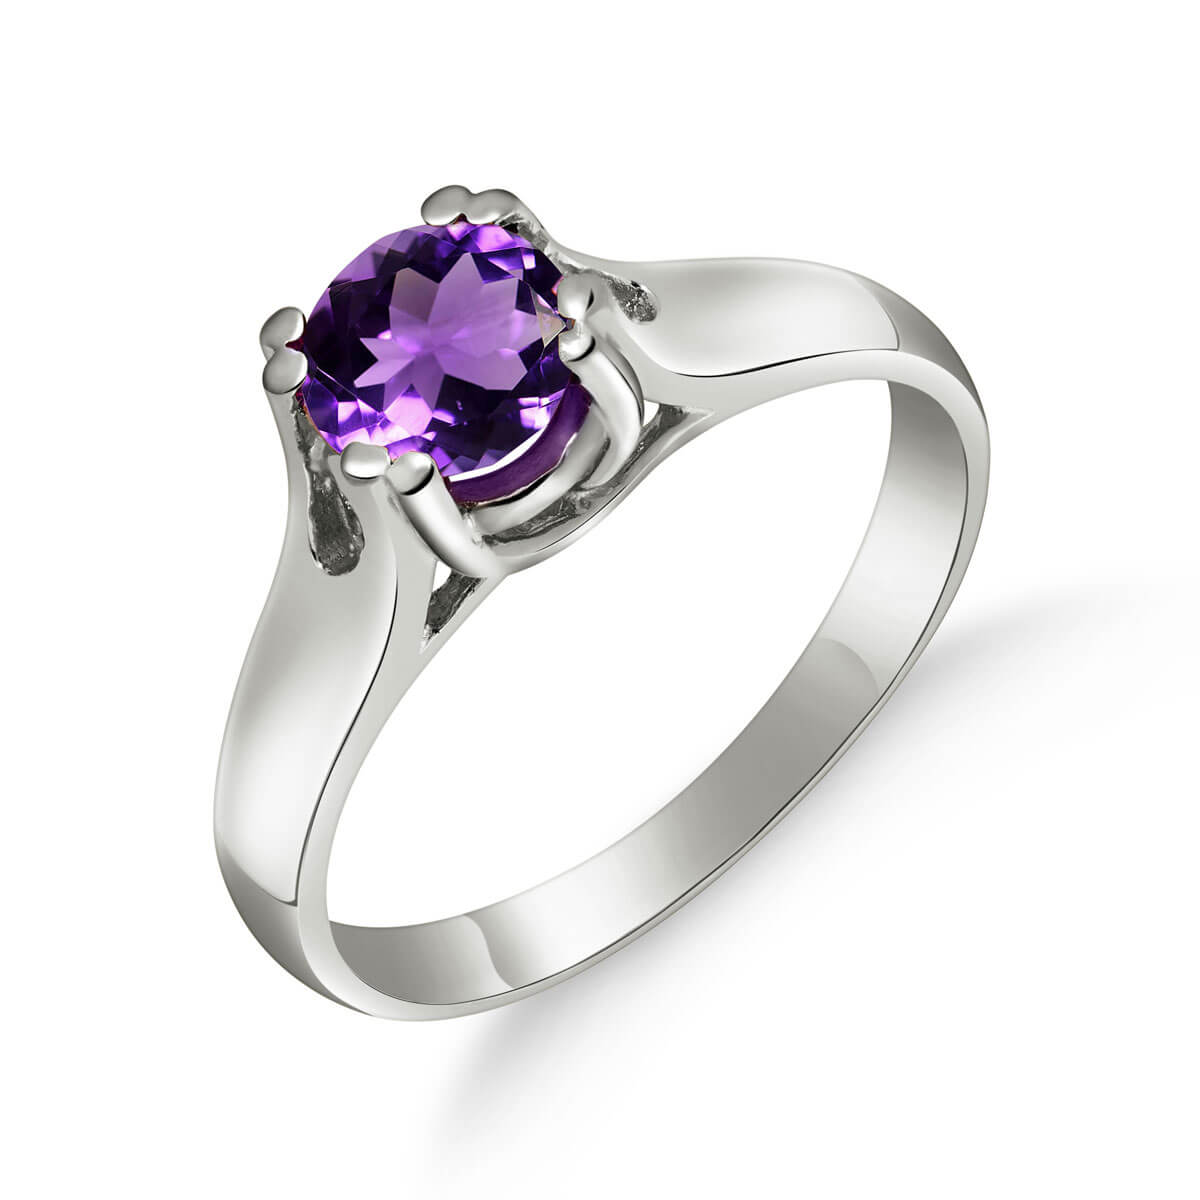 Amethyst Solitaire Ring 1.1 ct in 18ct White Gold